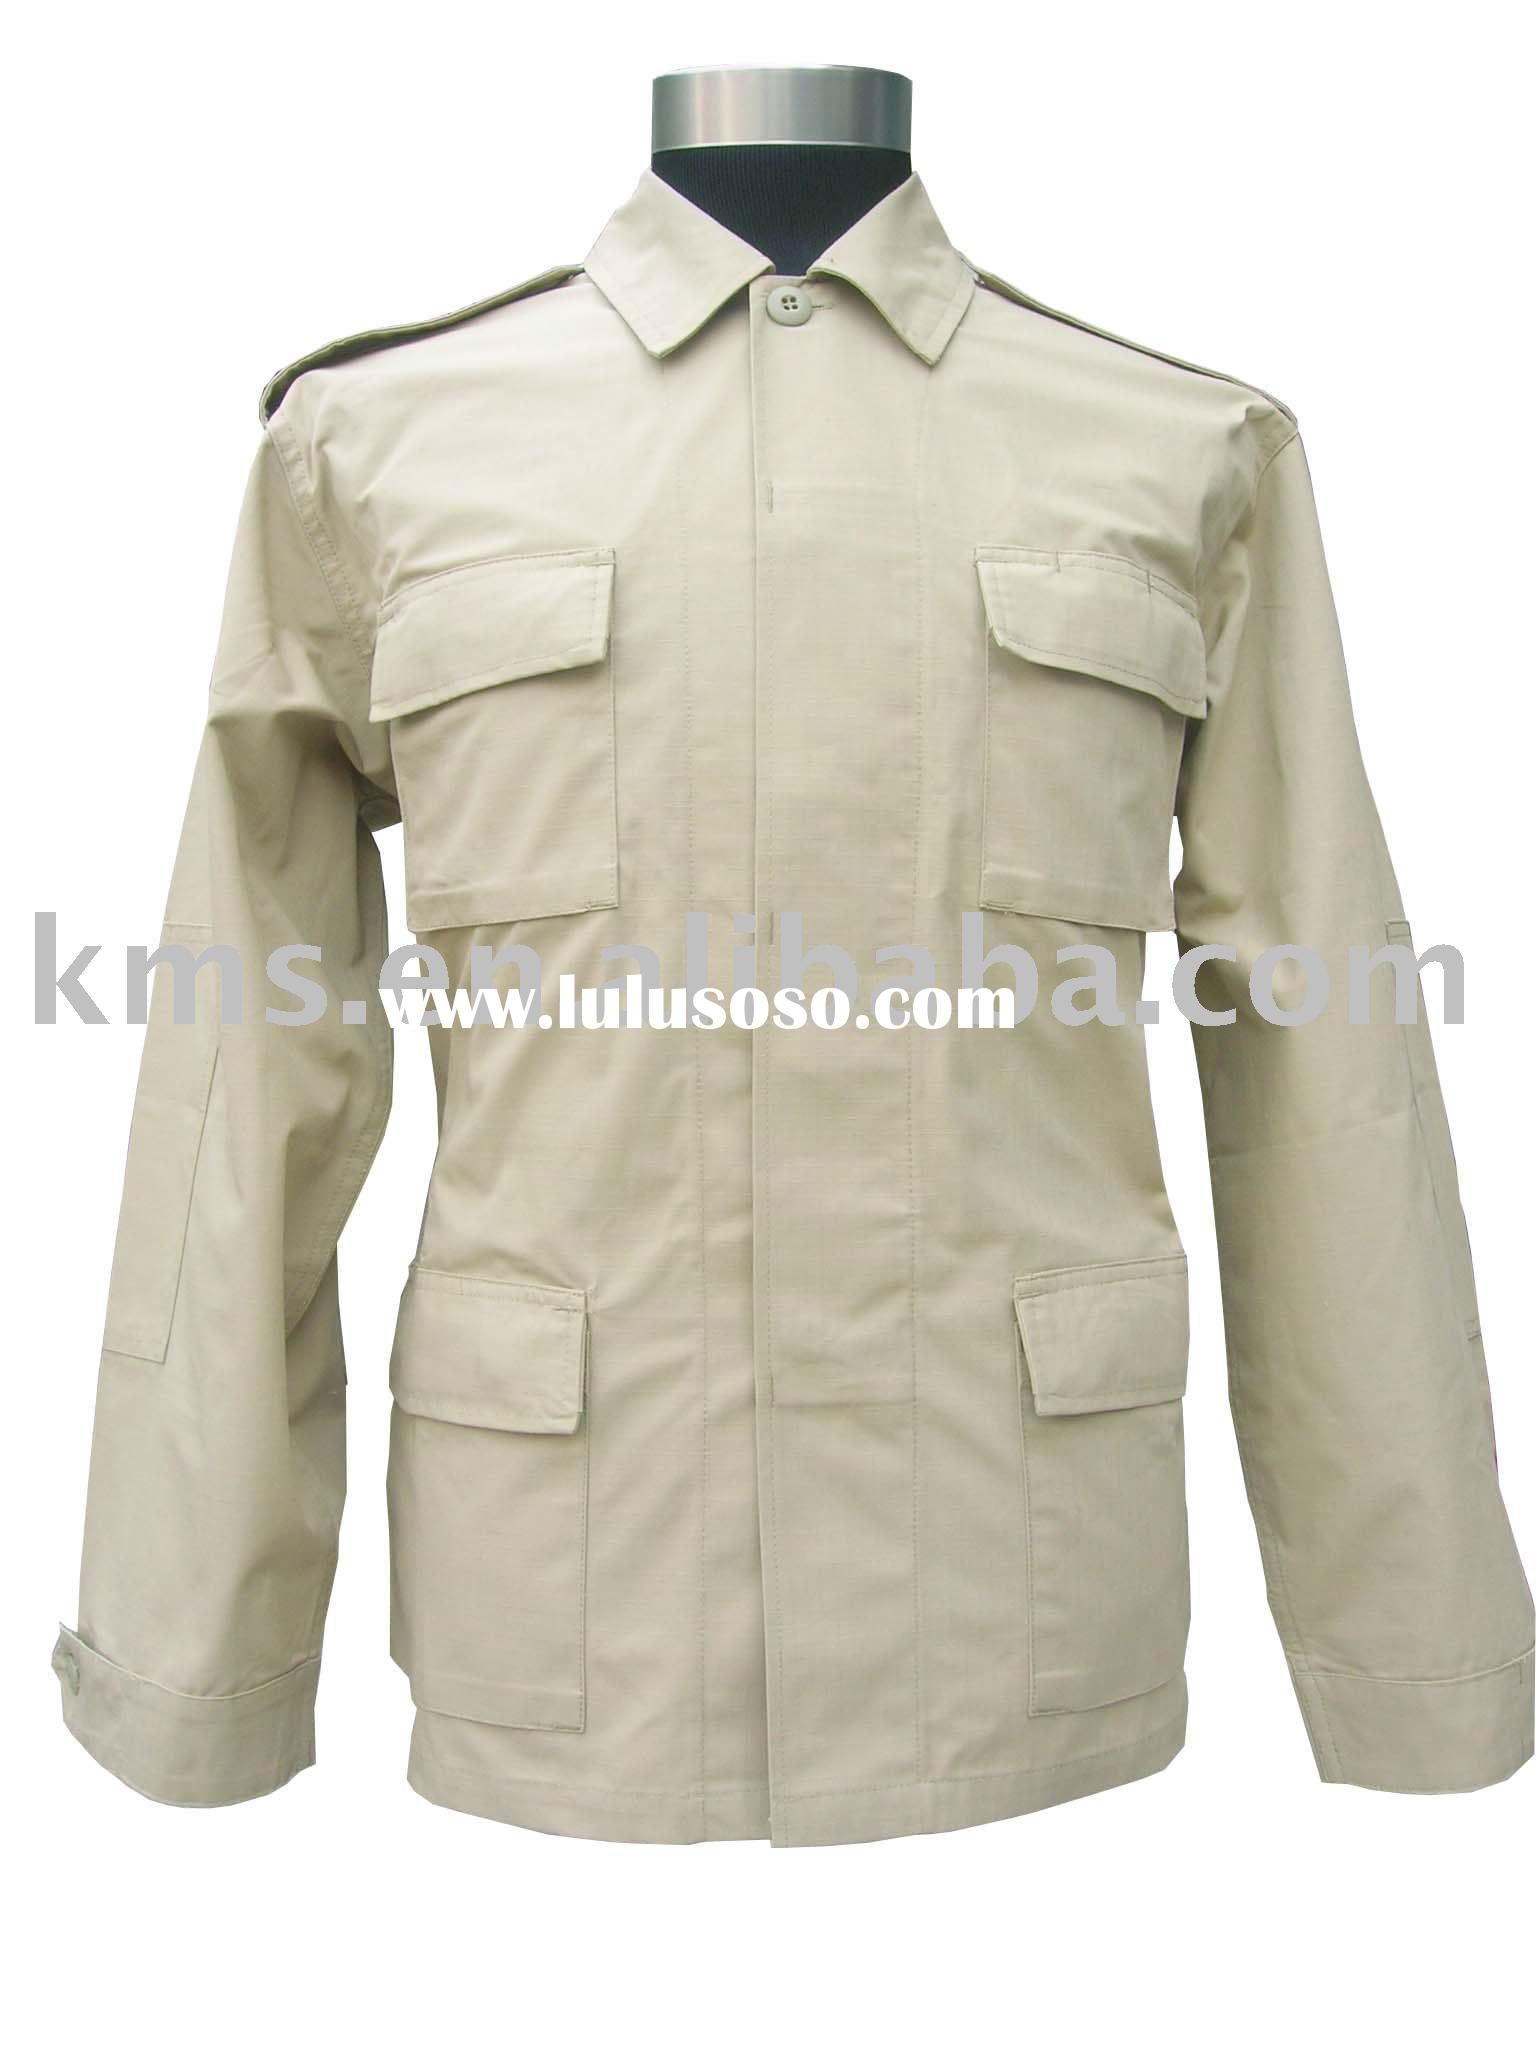 ARMY COMBAT UNIFORM DESIGN AND MAKE